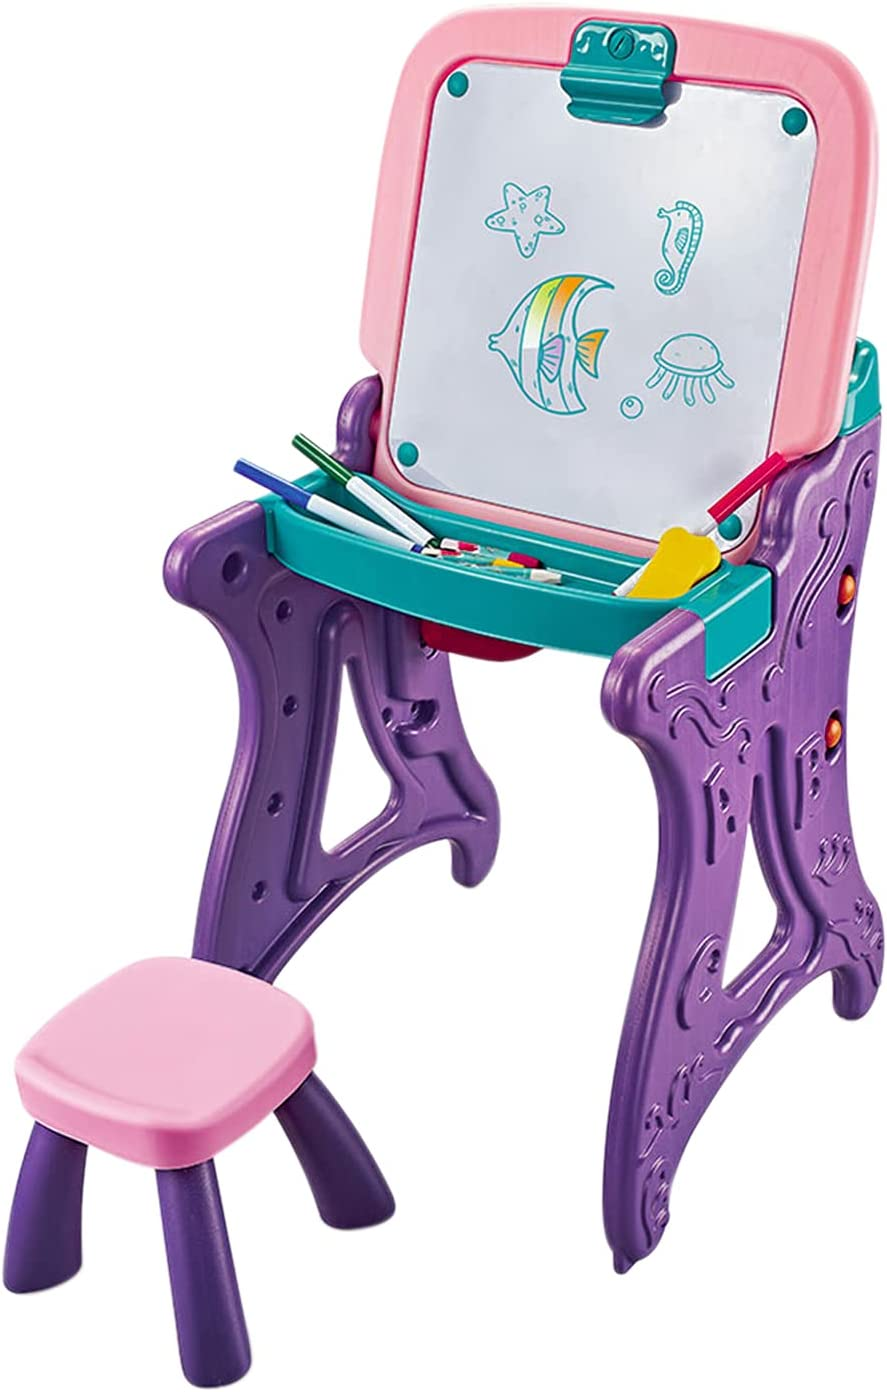 Writing Drawing Board Puzzle Science Save money and Long Beach Mall Toys-Early E Education